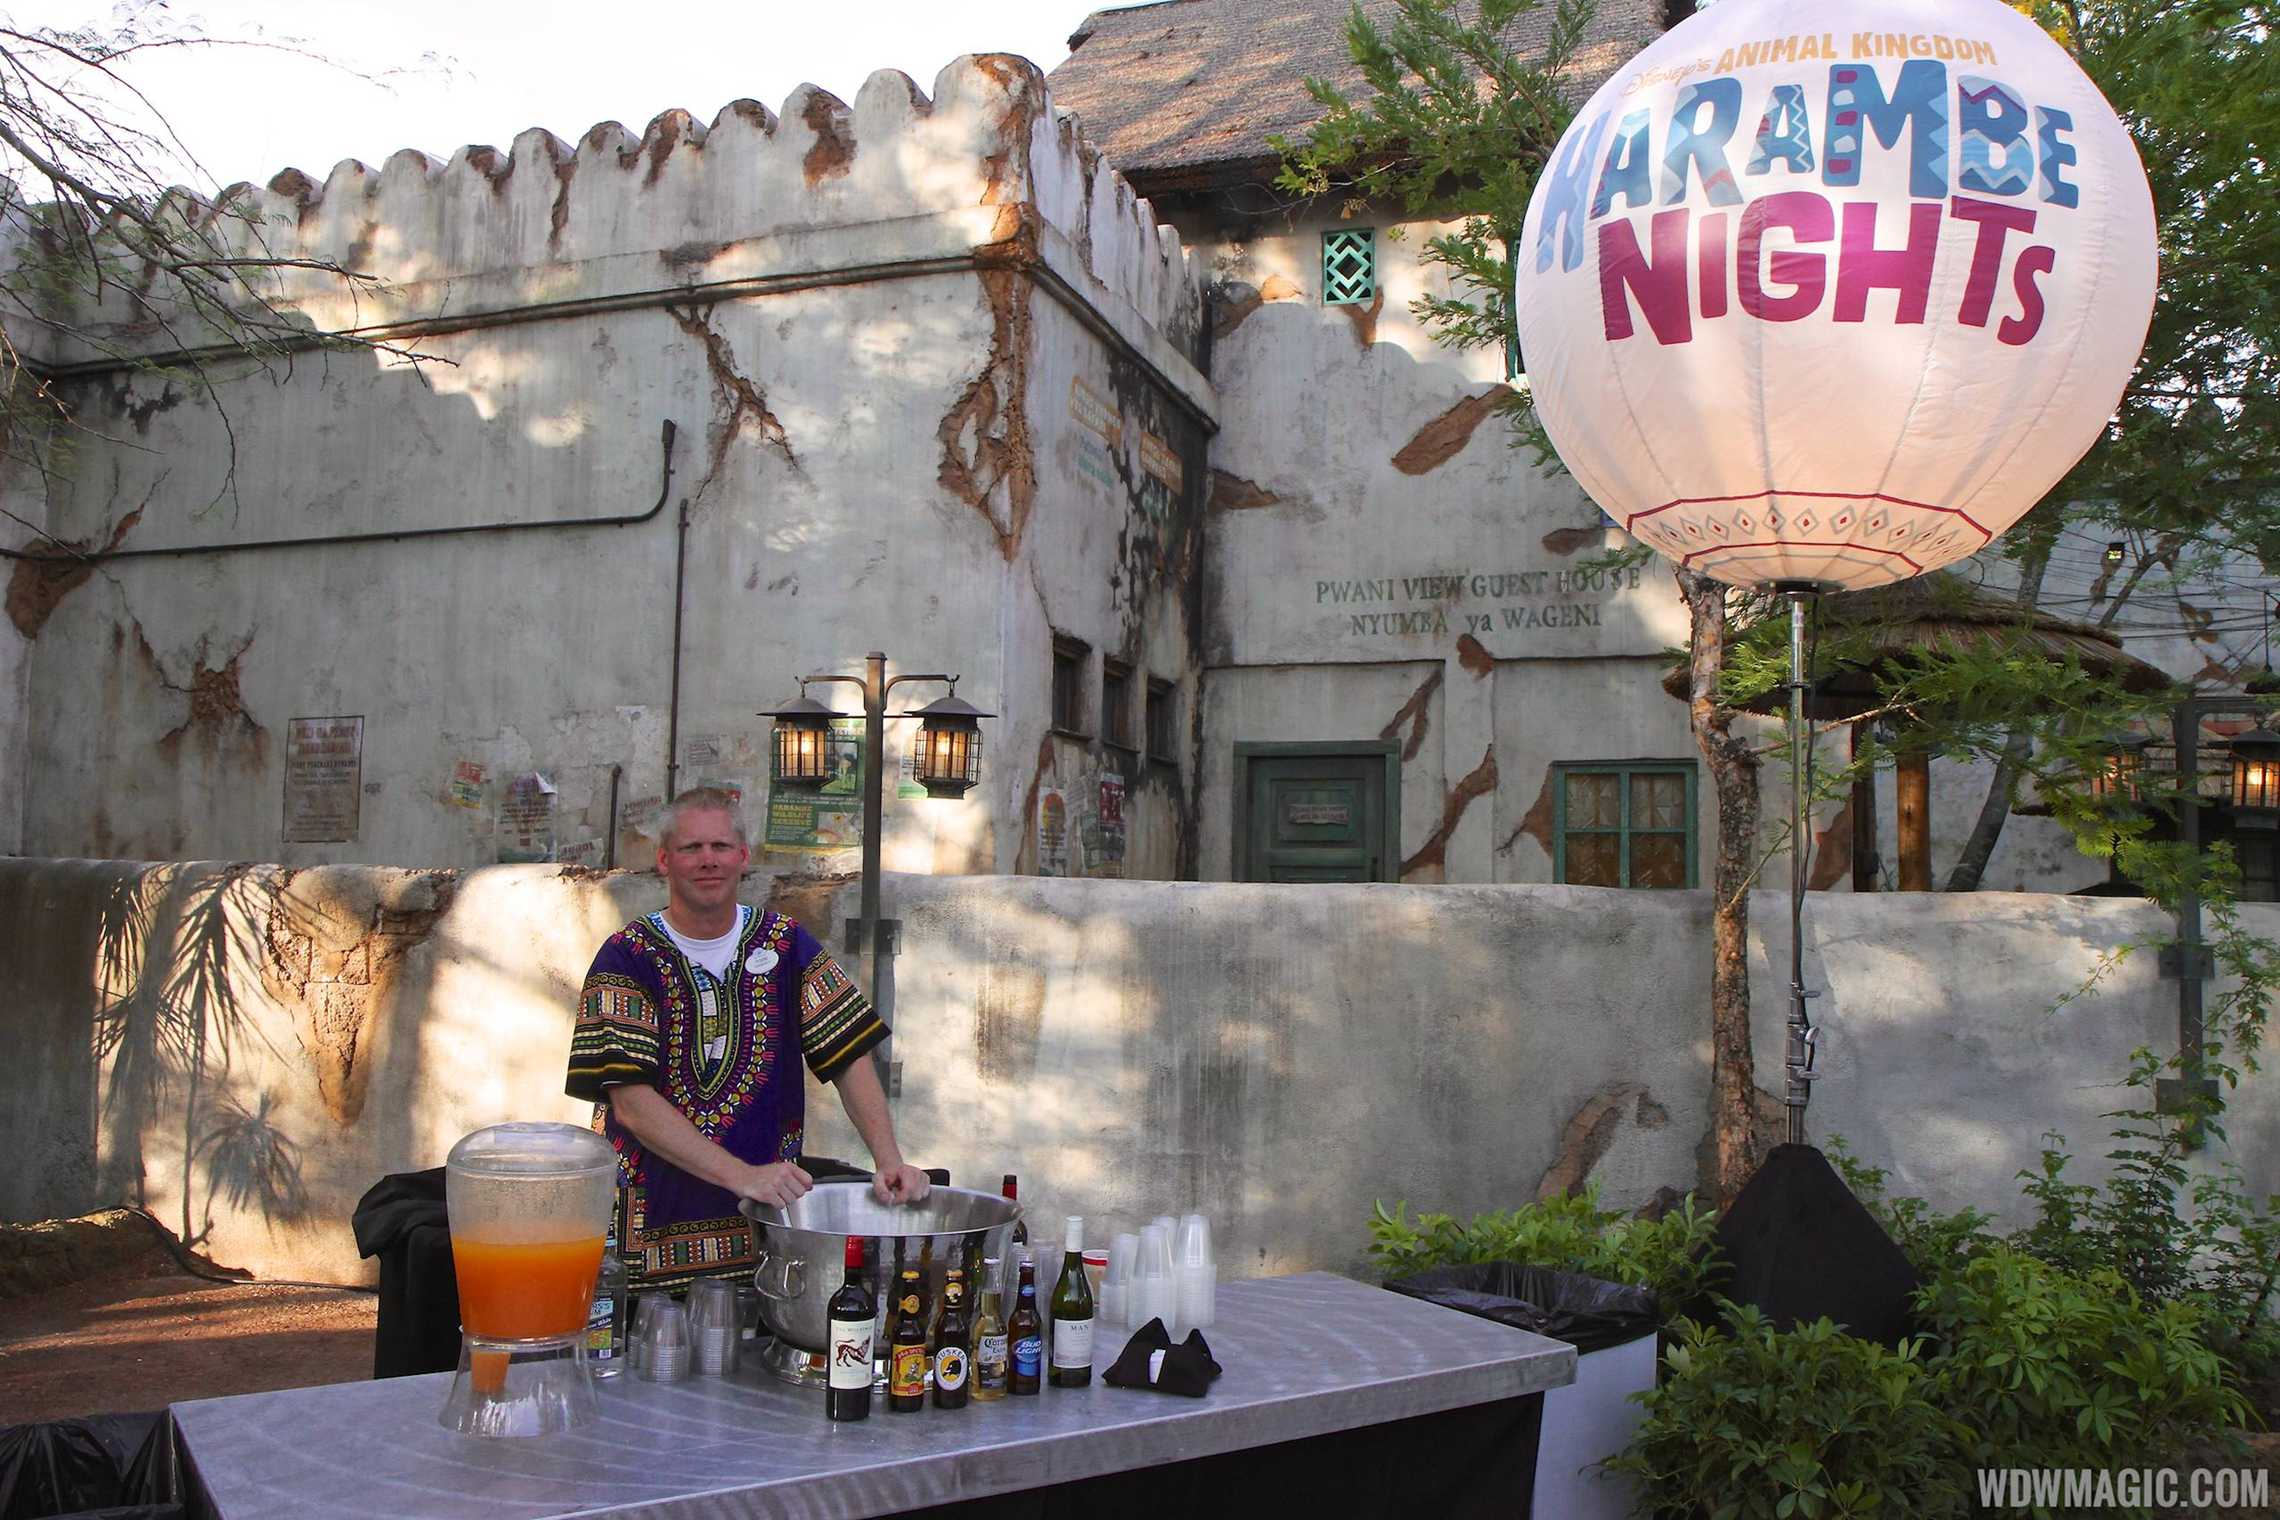 Harambe Nights - Pre-concert bar